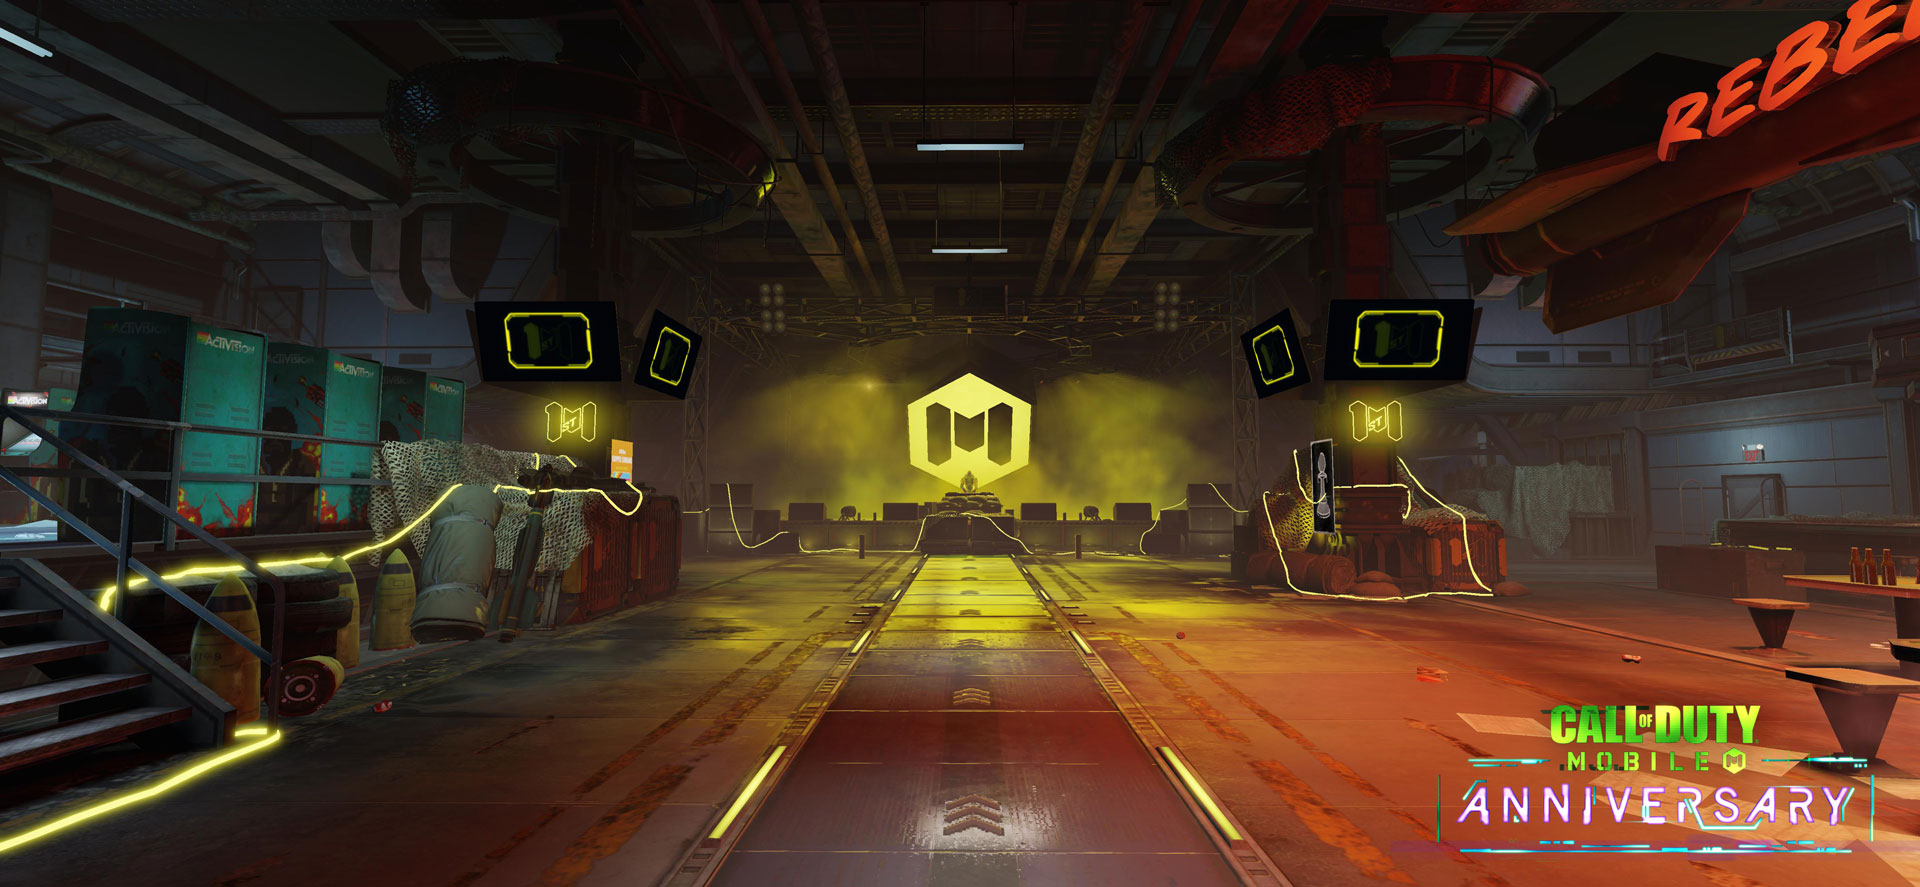 call of duty mobile turns 1 introducing anniversary the latest season and a celebration of this milestone event call of duty mobile turns 1